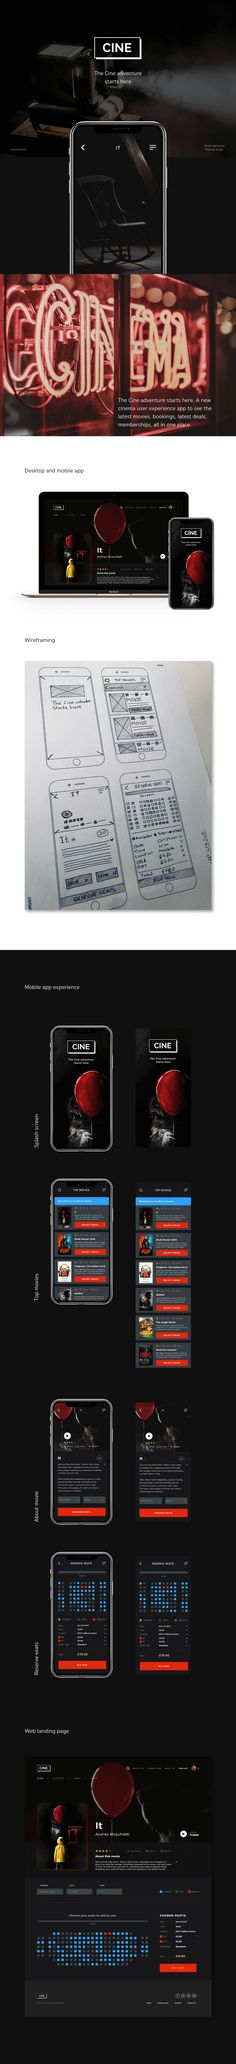 "다음 @Behance 프로젝트 확인: ""The Cine app. UX/UI #MadeWithAdobeXD"" https://www.behance.net/gallery/57746669/The-Cine-app-UXUI-MadeWithAdobeXD"